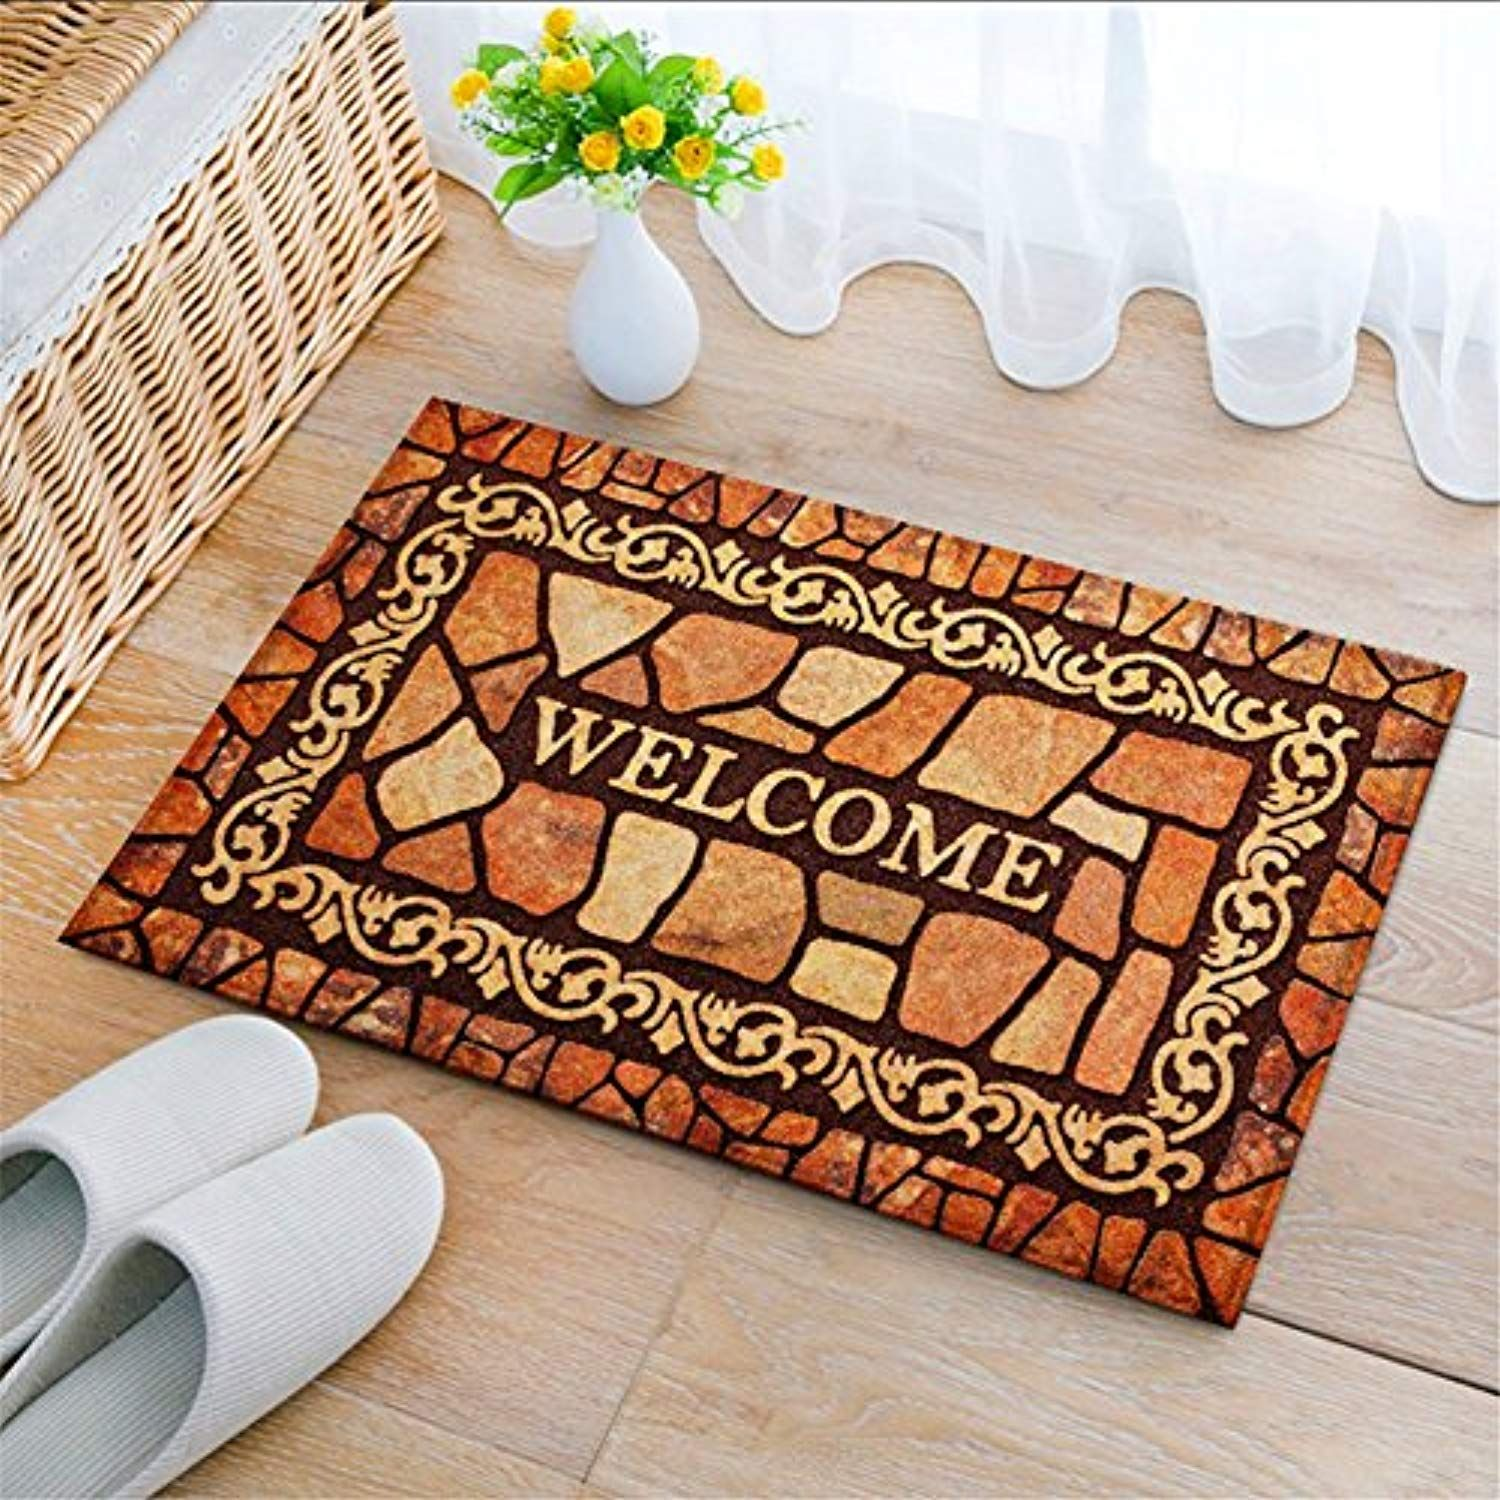 Gentil Eanpet Front Door Mat Funny Doormat Welcome Mats 2x3 Thin Outdoor Indoor  Entrance Doormat Rubber Non Slip Rug Outside Waterproof Shoes Scraper Area  Rug For ...